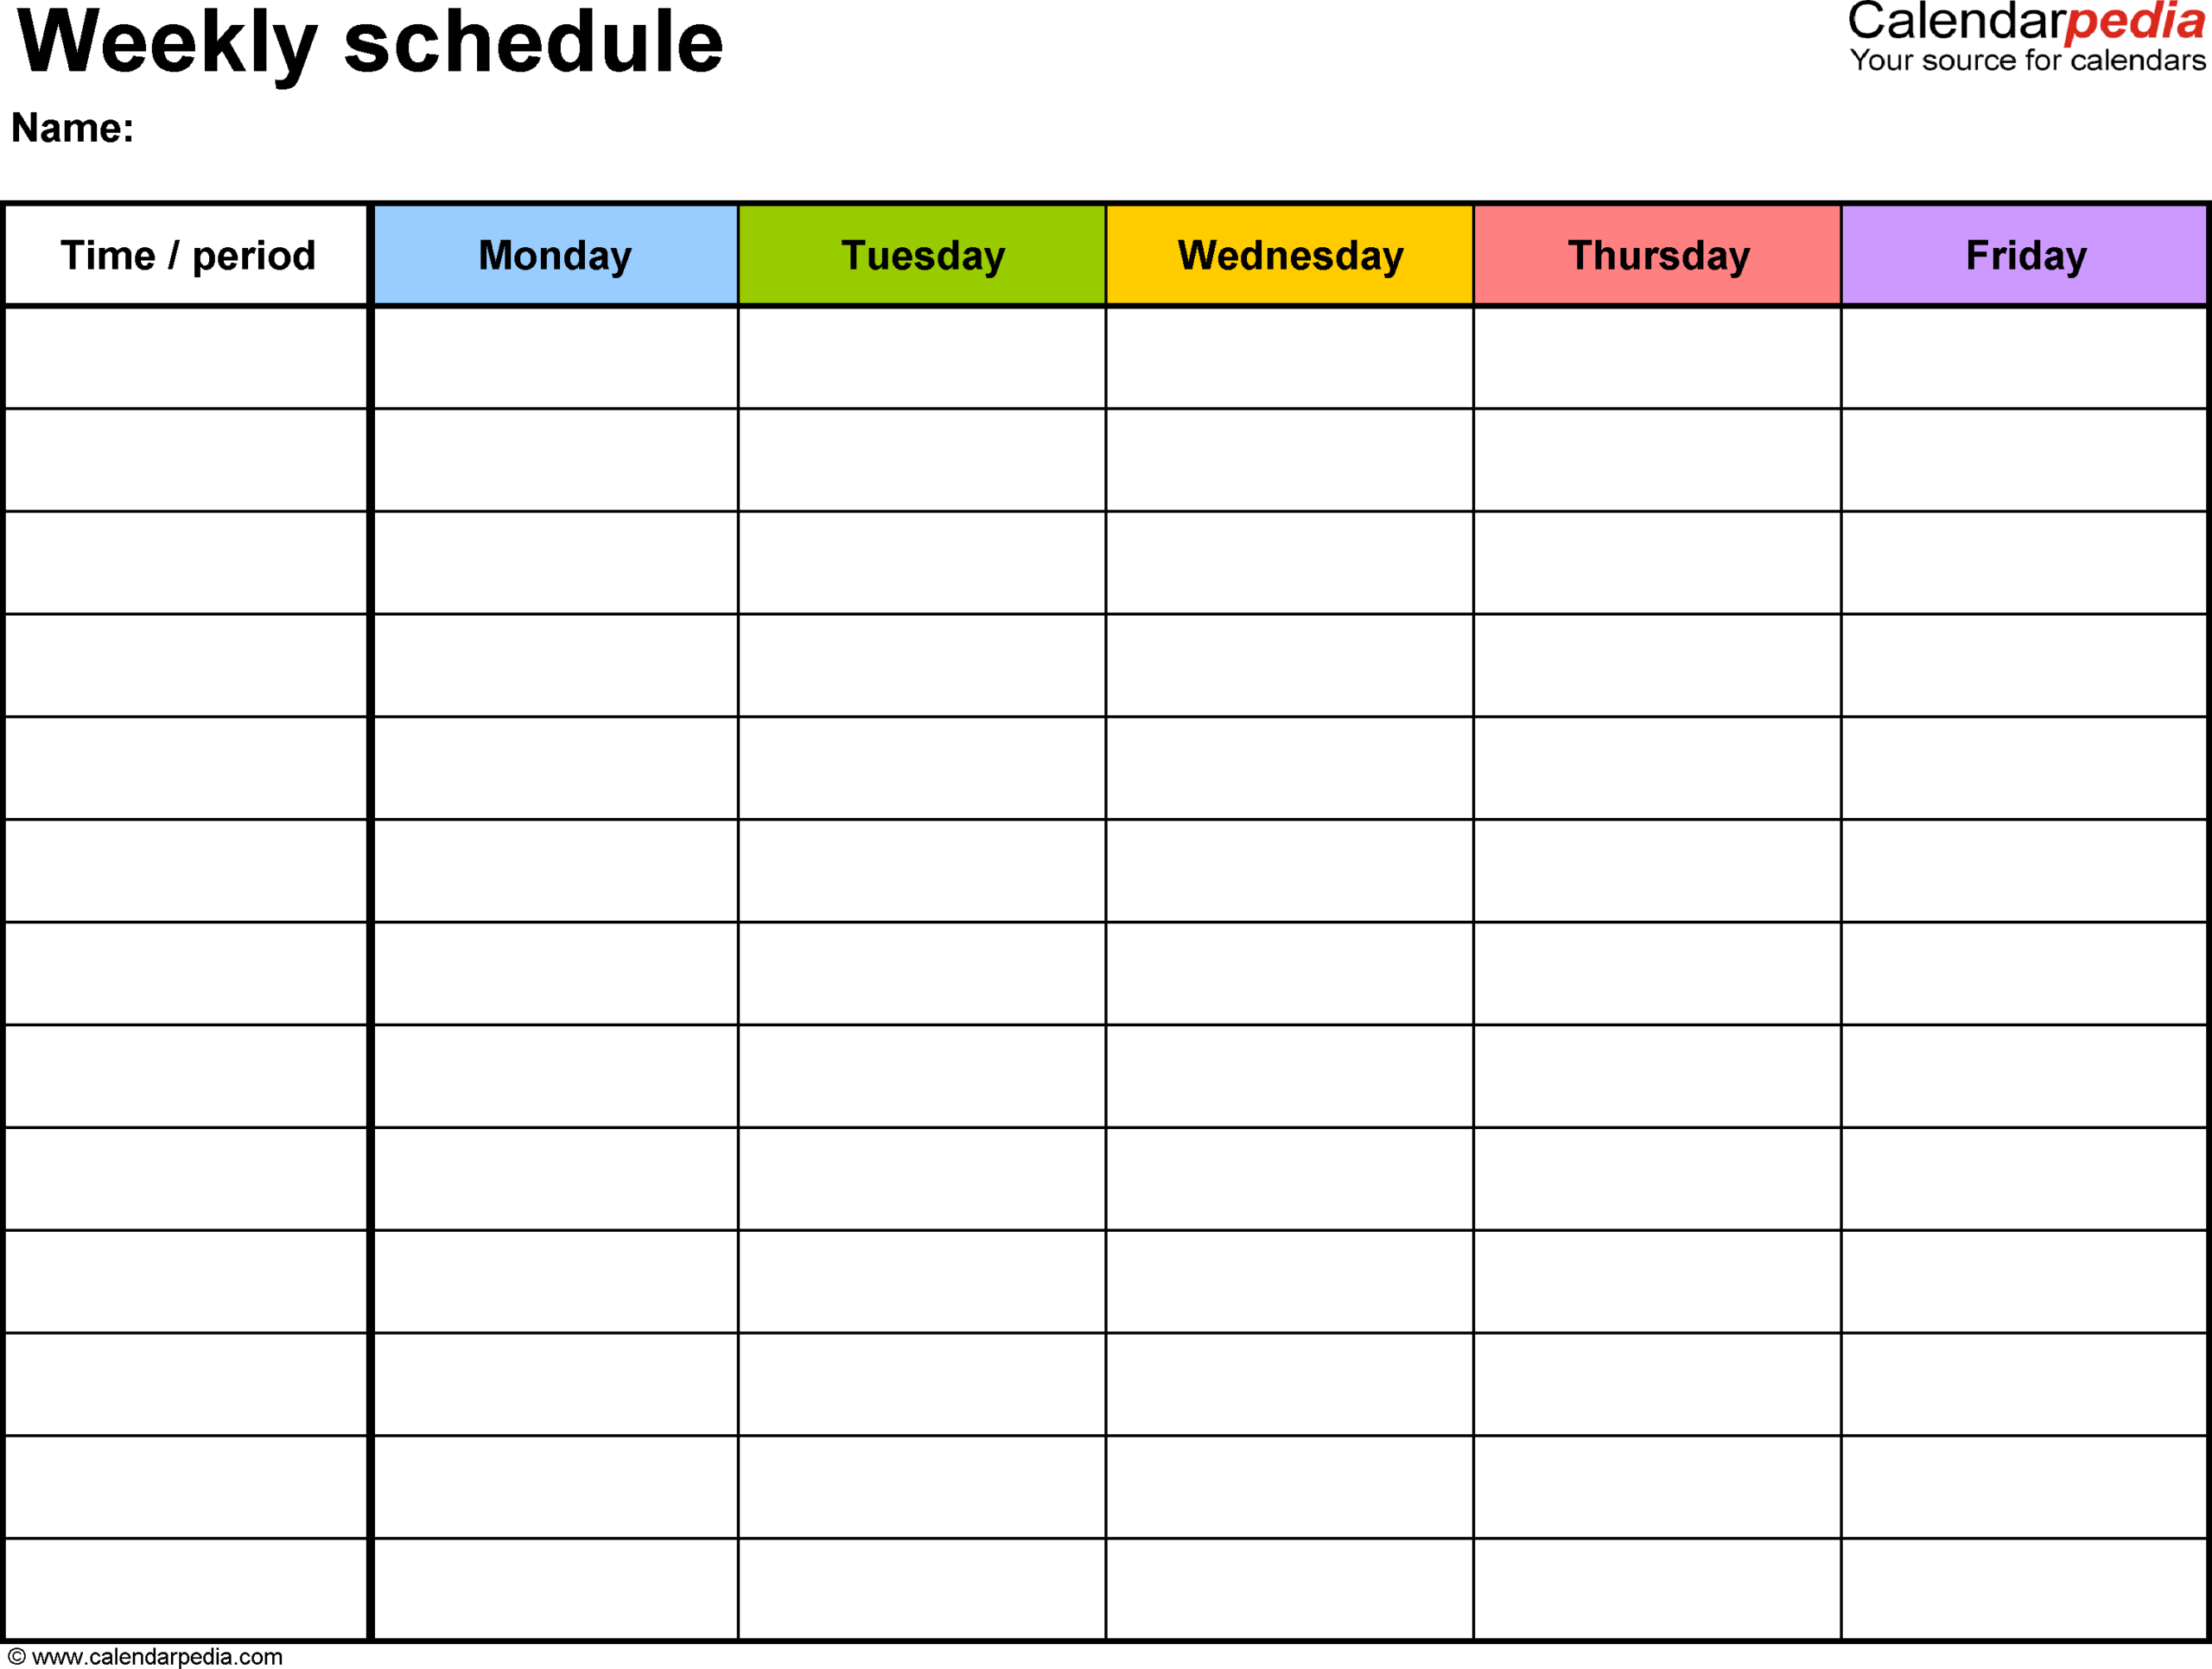 Printable Weekly Calendar | Calendar For Planning for Calendars With Time Slots